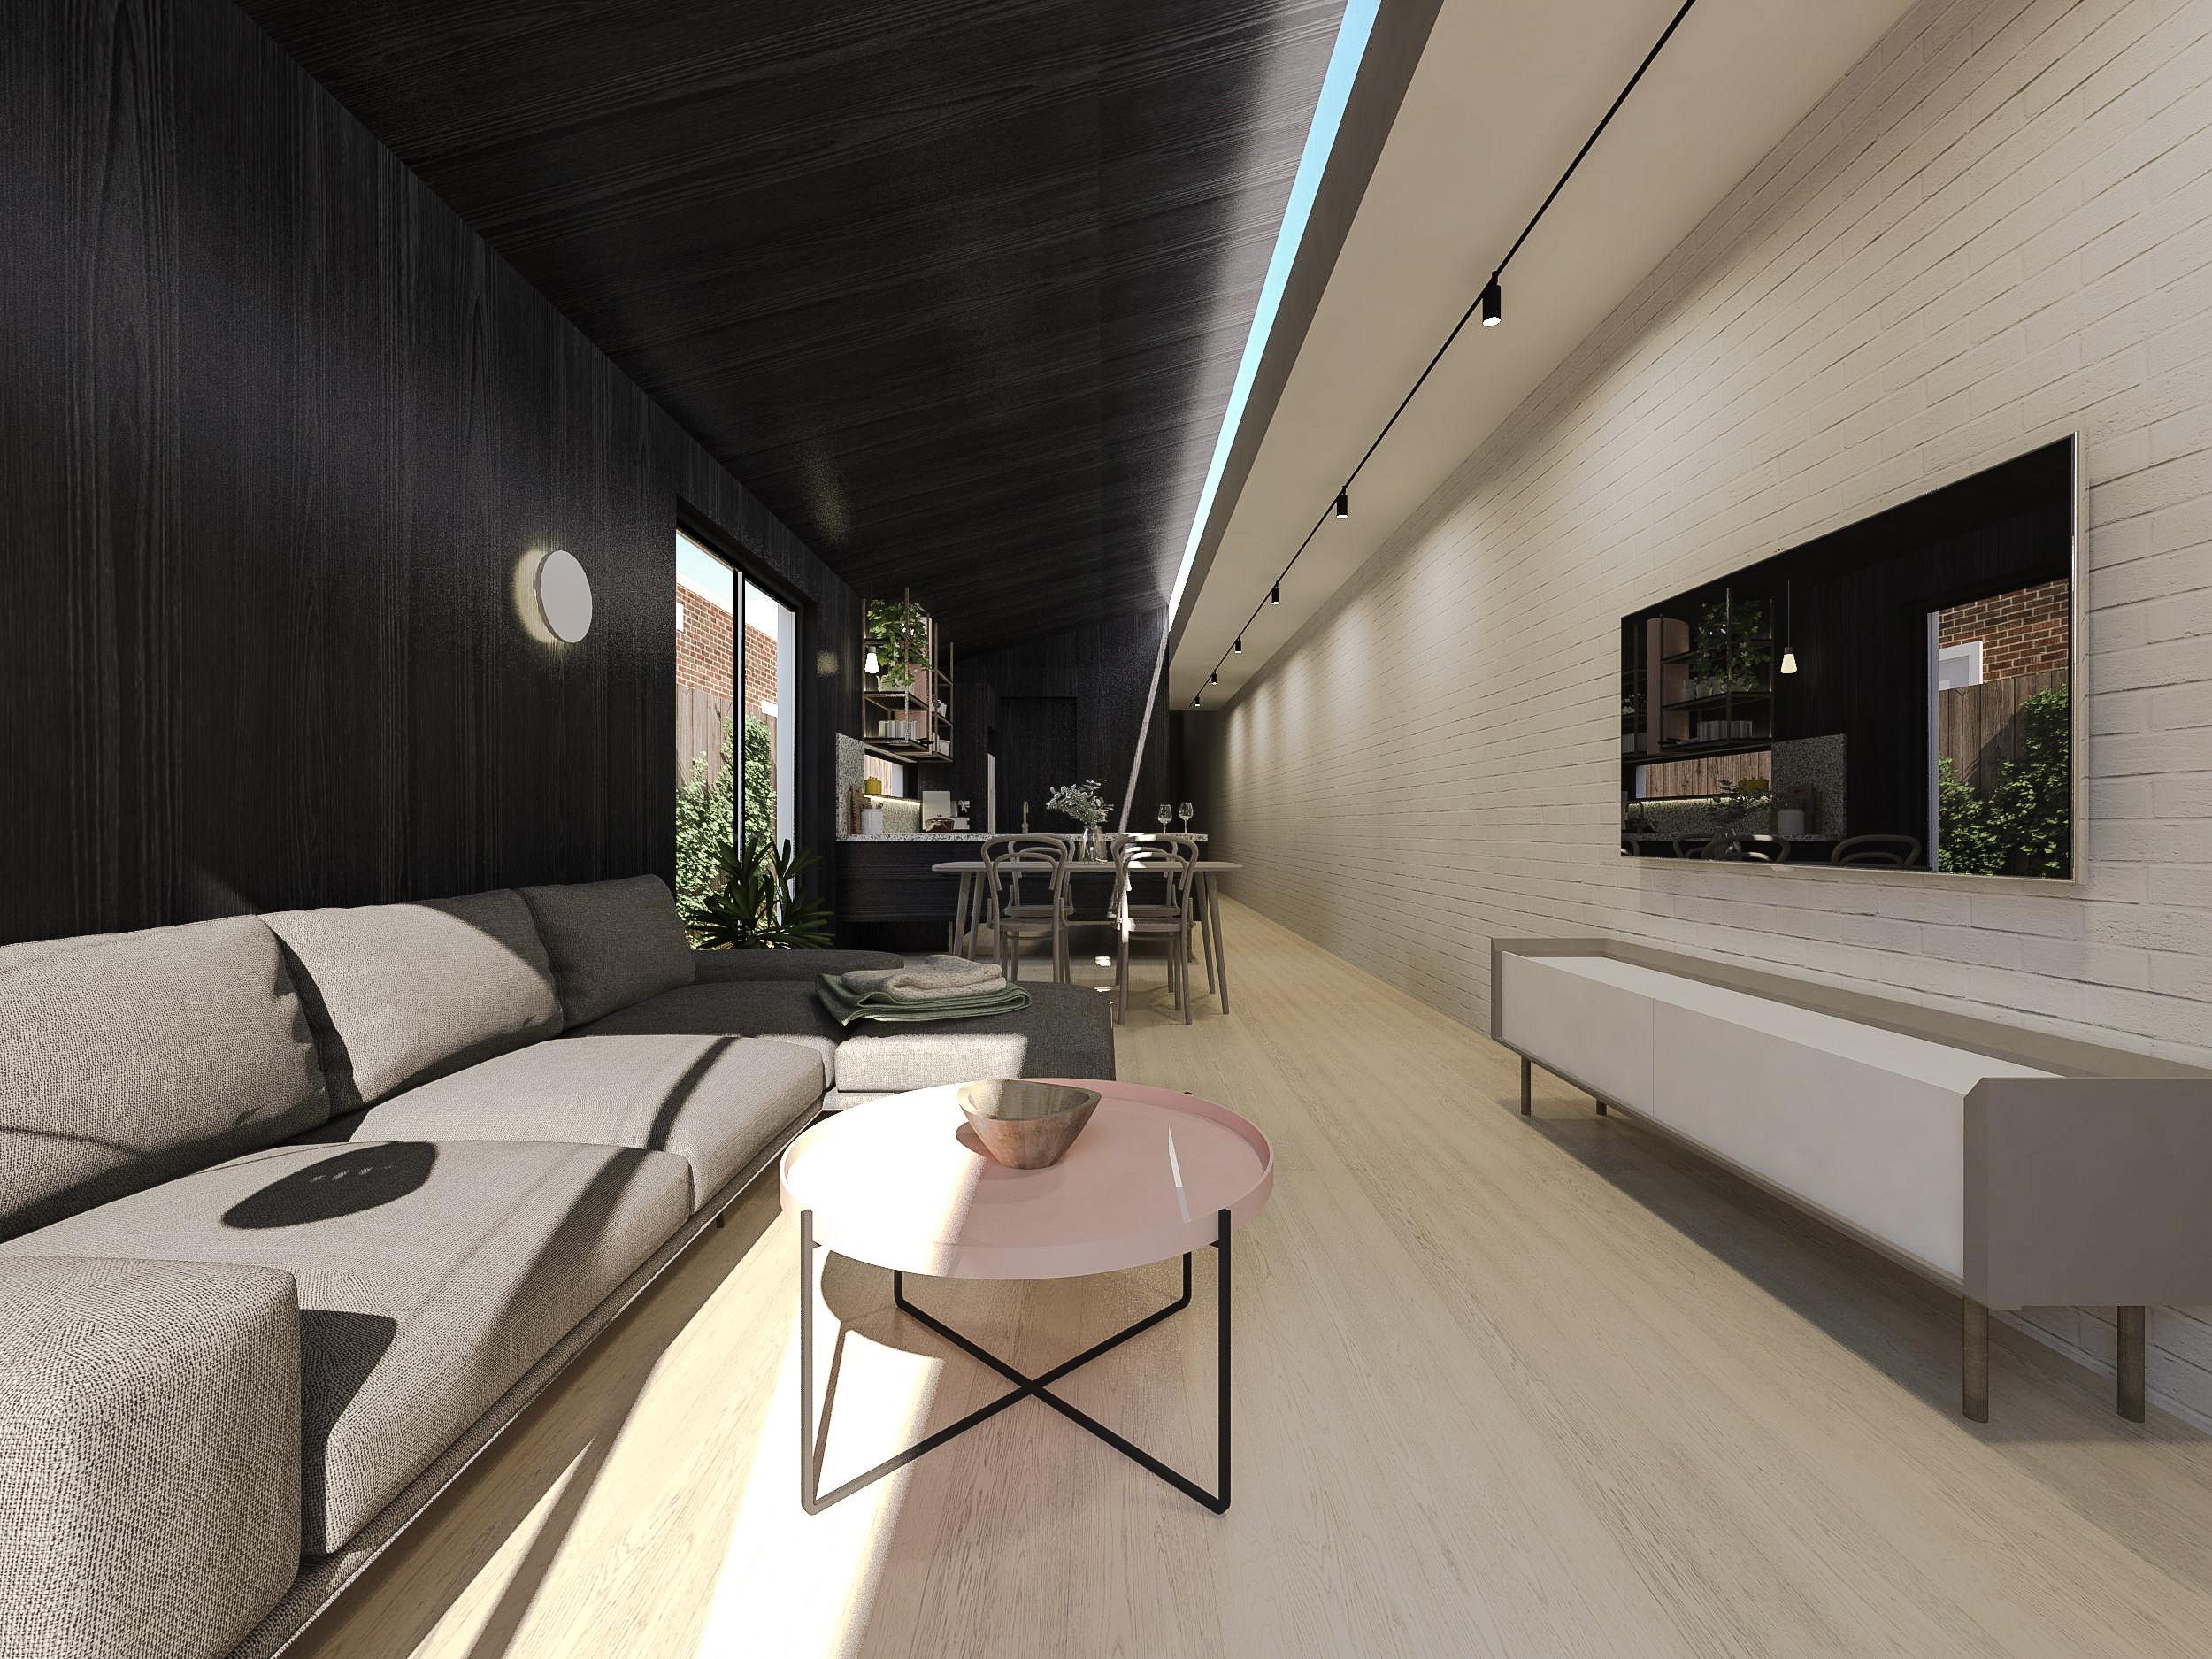 0Pitch_Architecture_Sunray Terrace_3